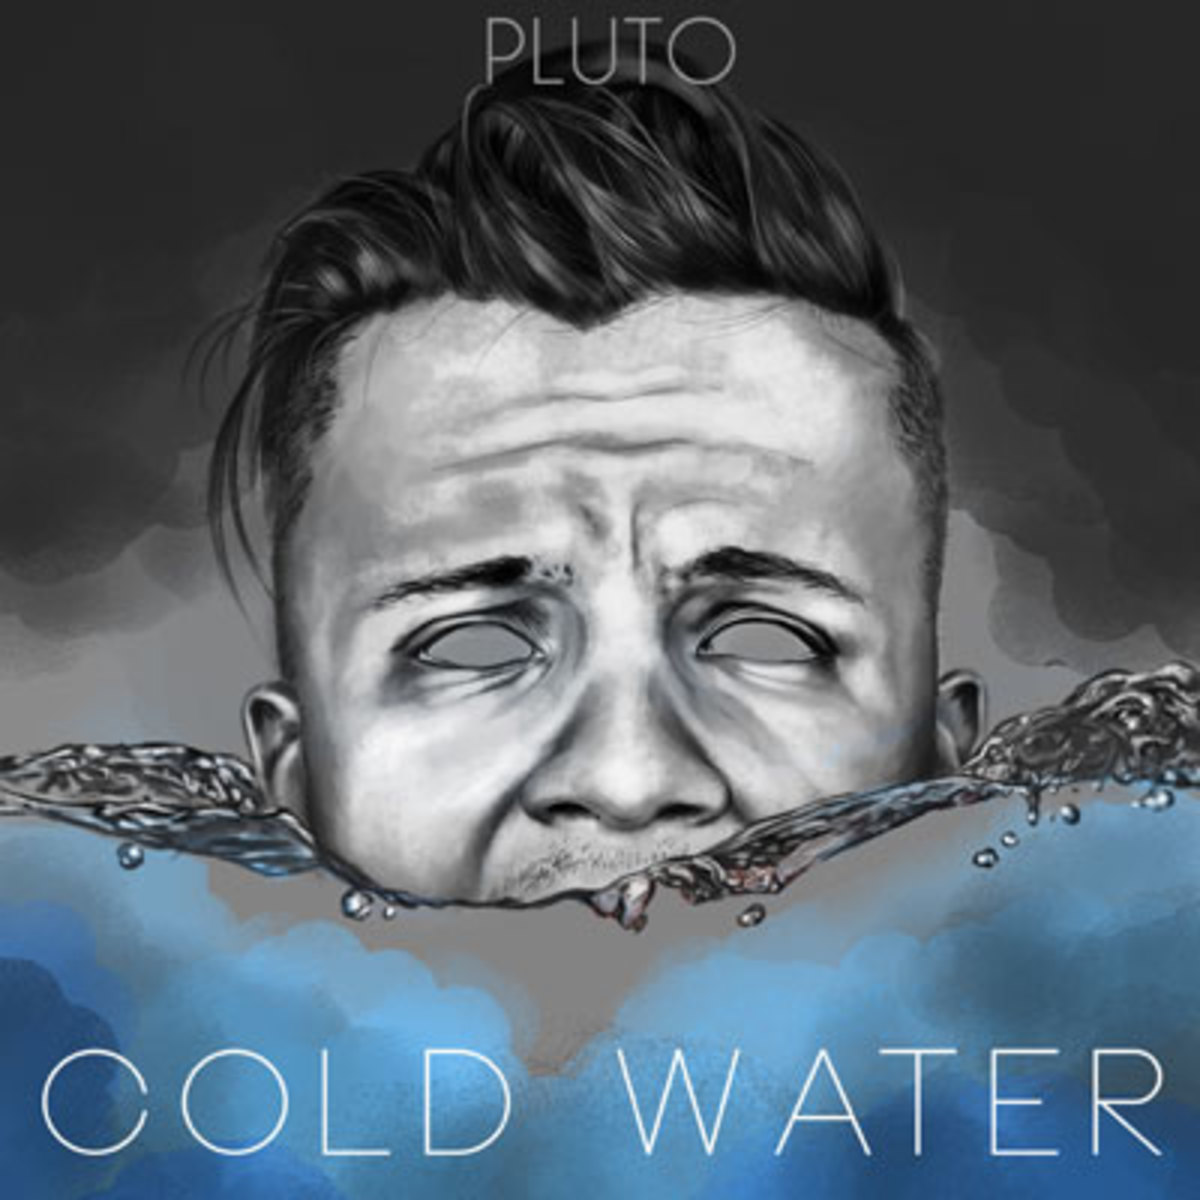 pluto-cold-water-2.jpg